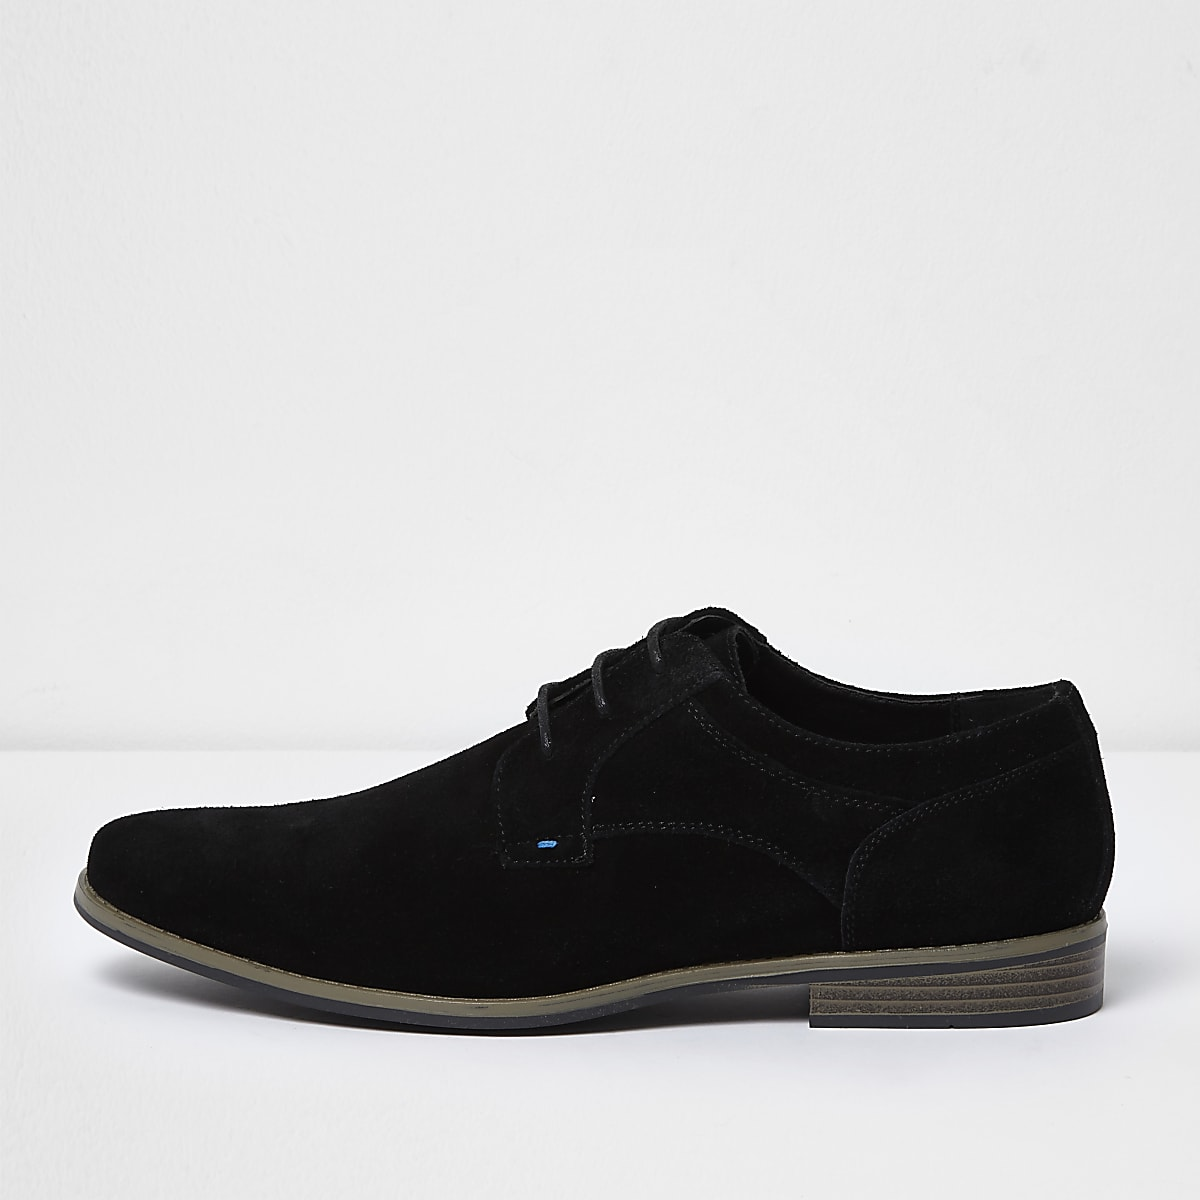 713c694ed9 Black suede derby shoes - Shoes - Shoes   Boots - men